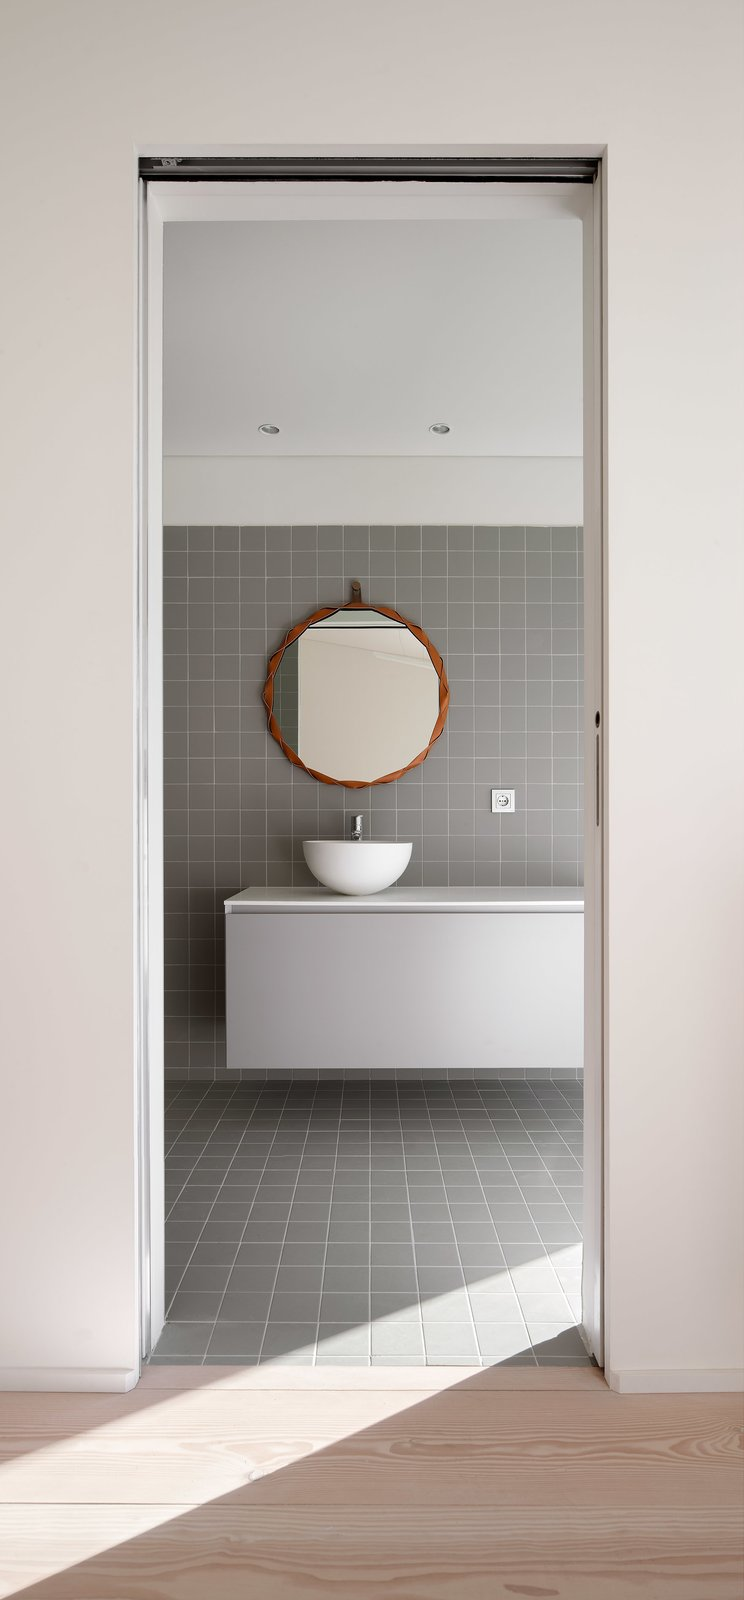 Bath Room, Light Hardwood Floor, Vessel Sink, and Ceramic Tile Floor  The Öcher House by MLMR Architecture Consultancy